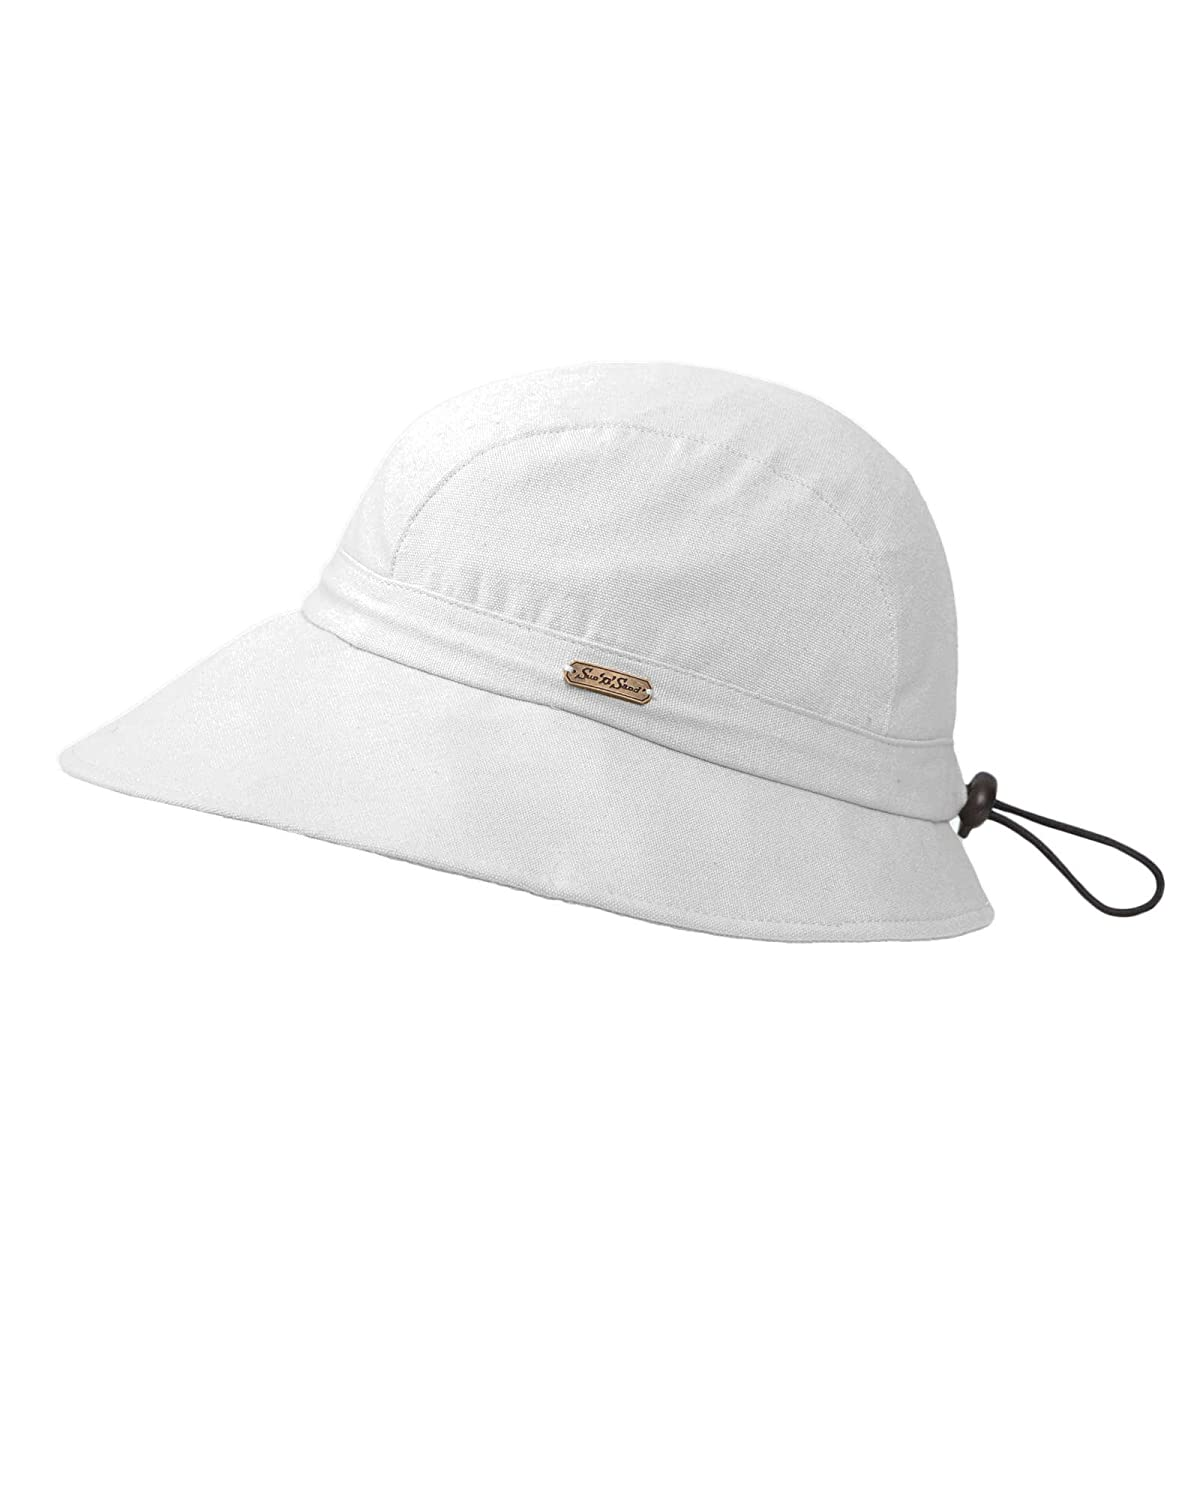 Sun n Sand Breezy Drawstring Hat White One Size 16593%WH